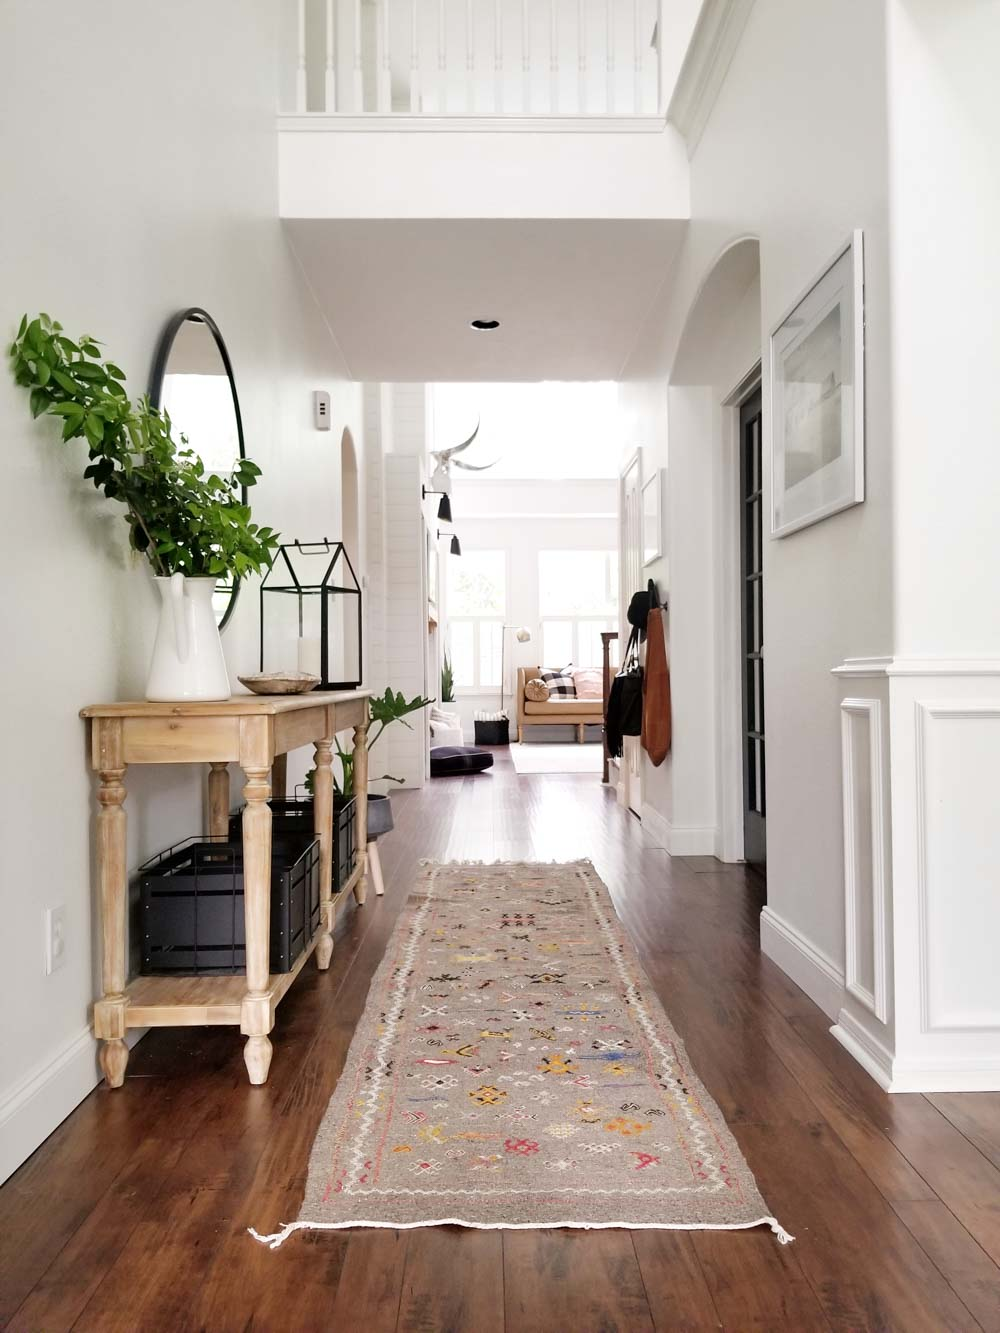 A Texas Home Full of Natural Light and Potential – Design*Sponge